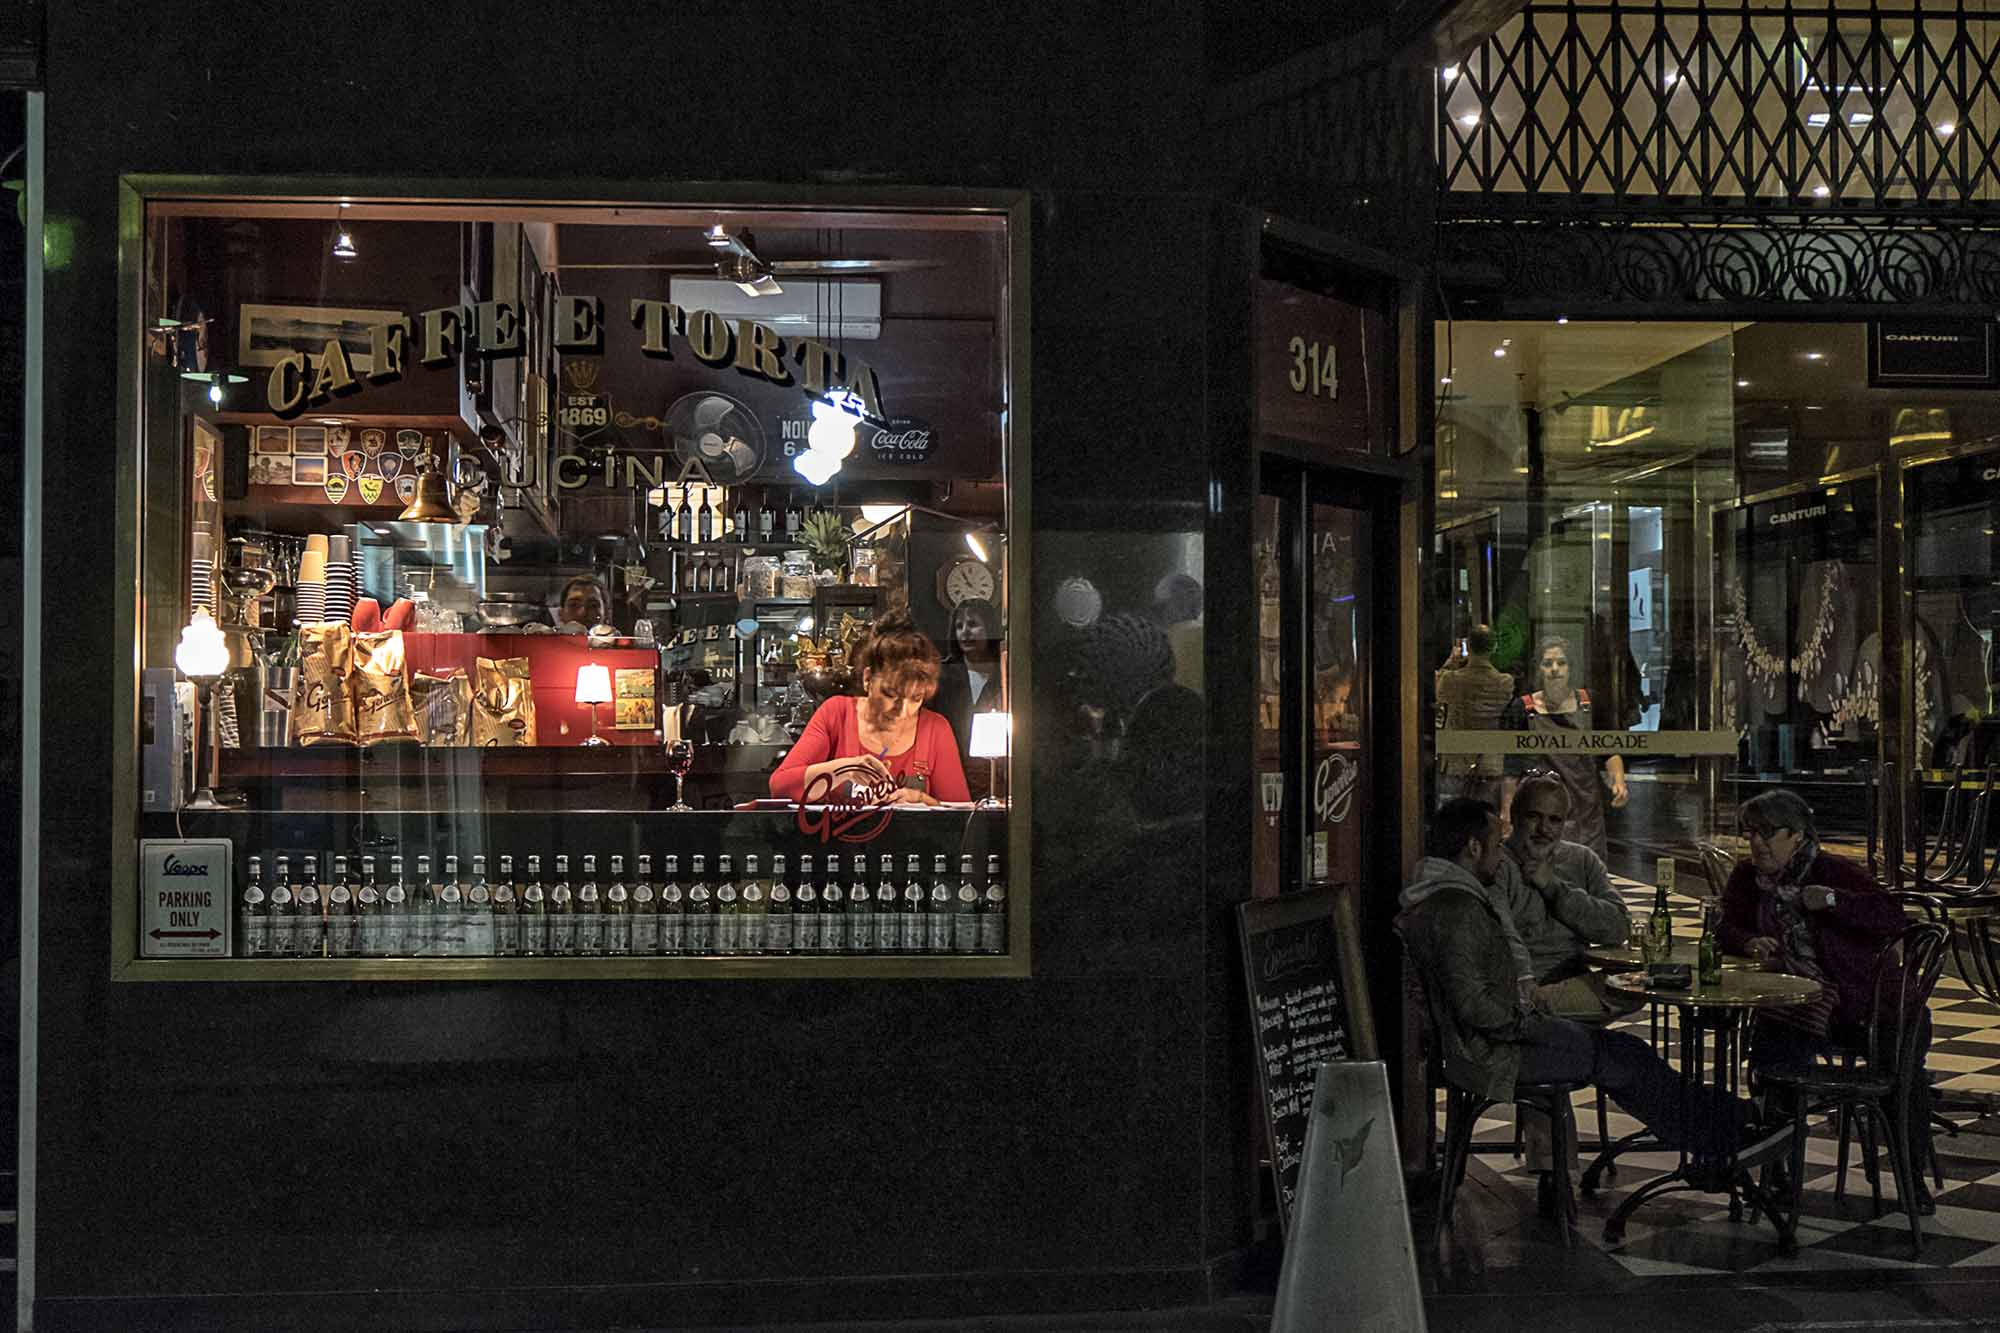 Little Collins Street and Royal Arcade, evening at the Caffe e Torta.